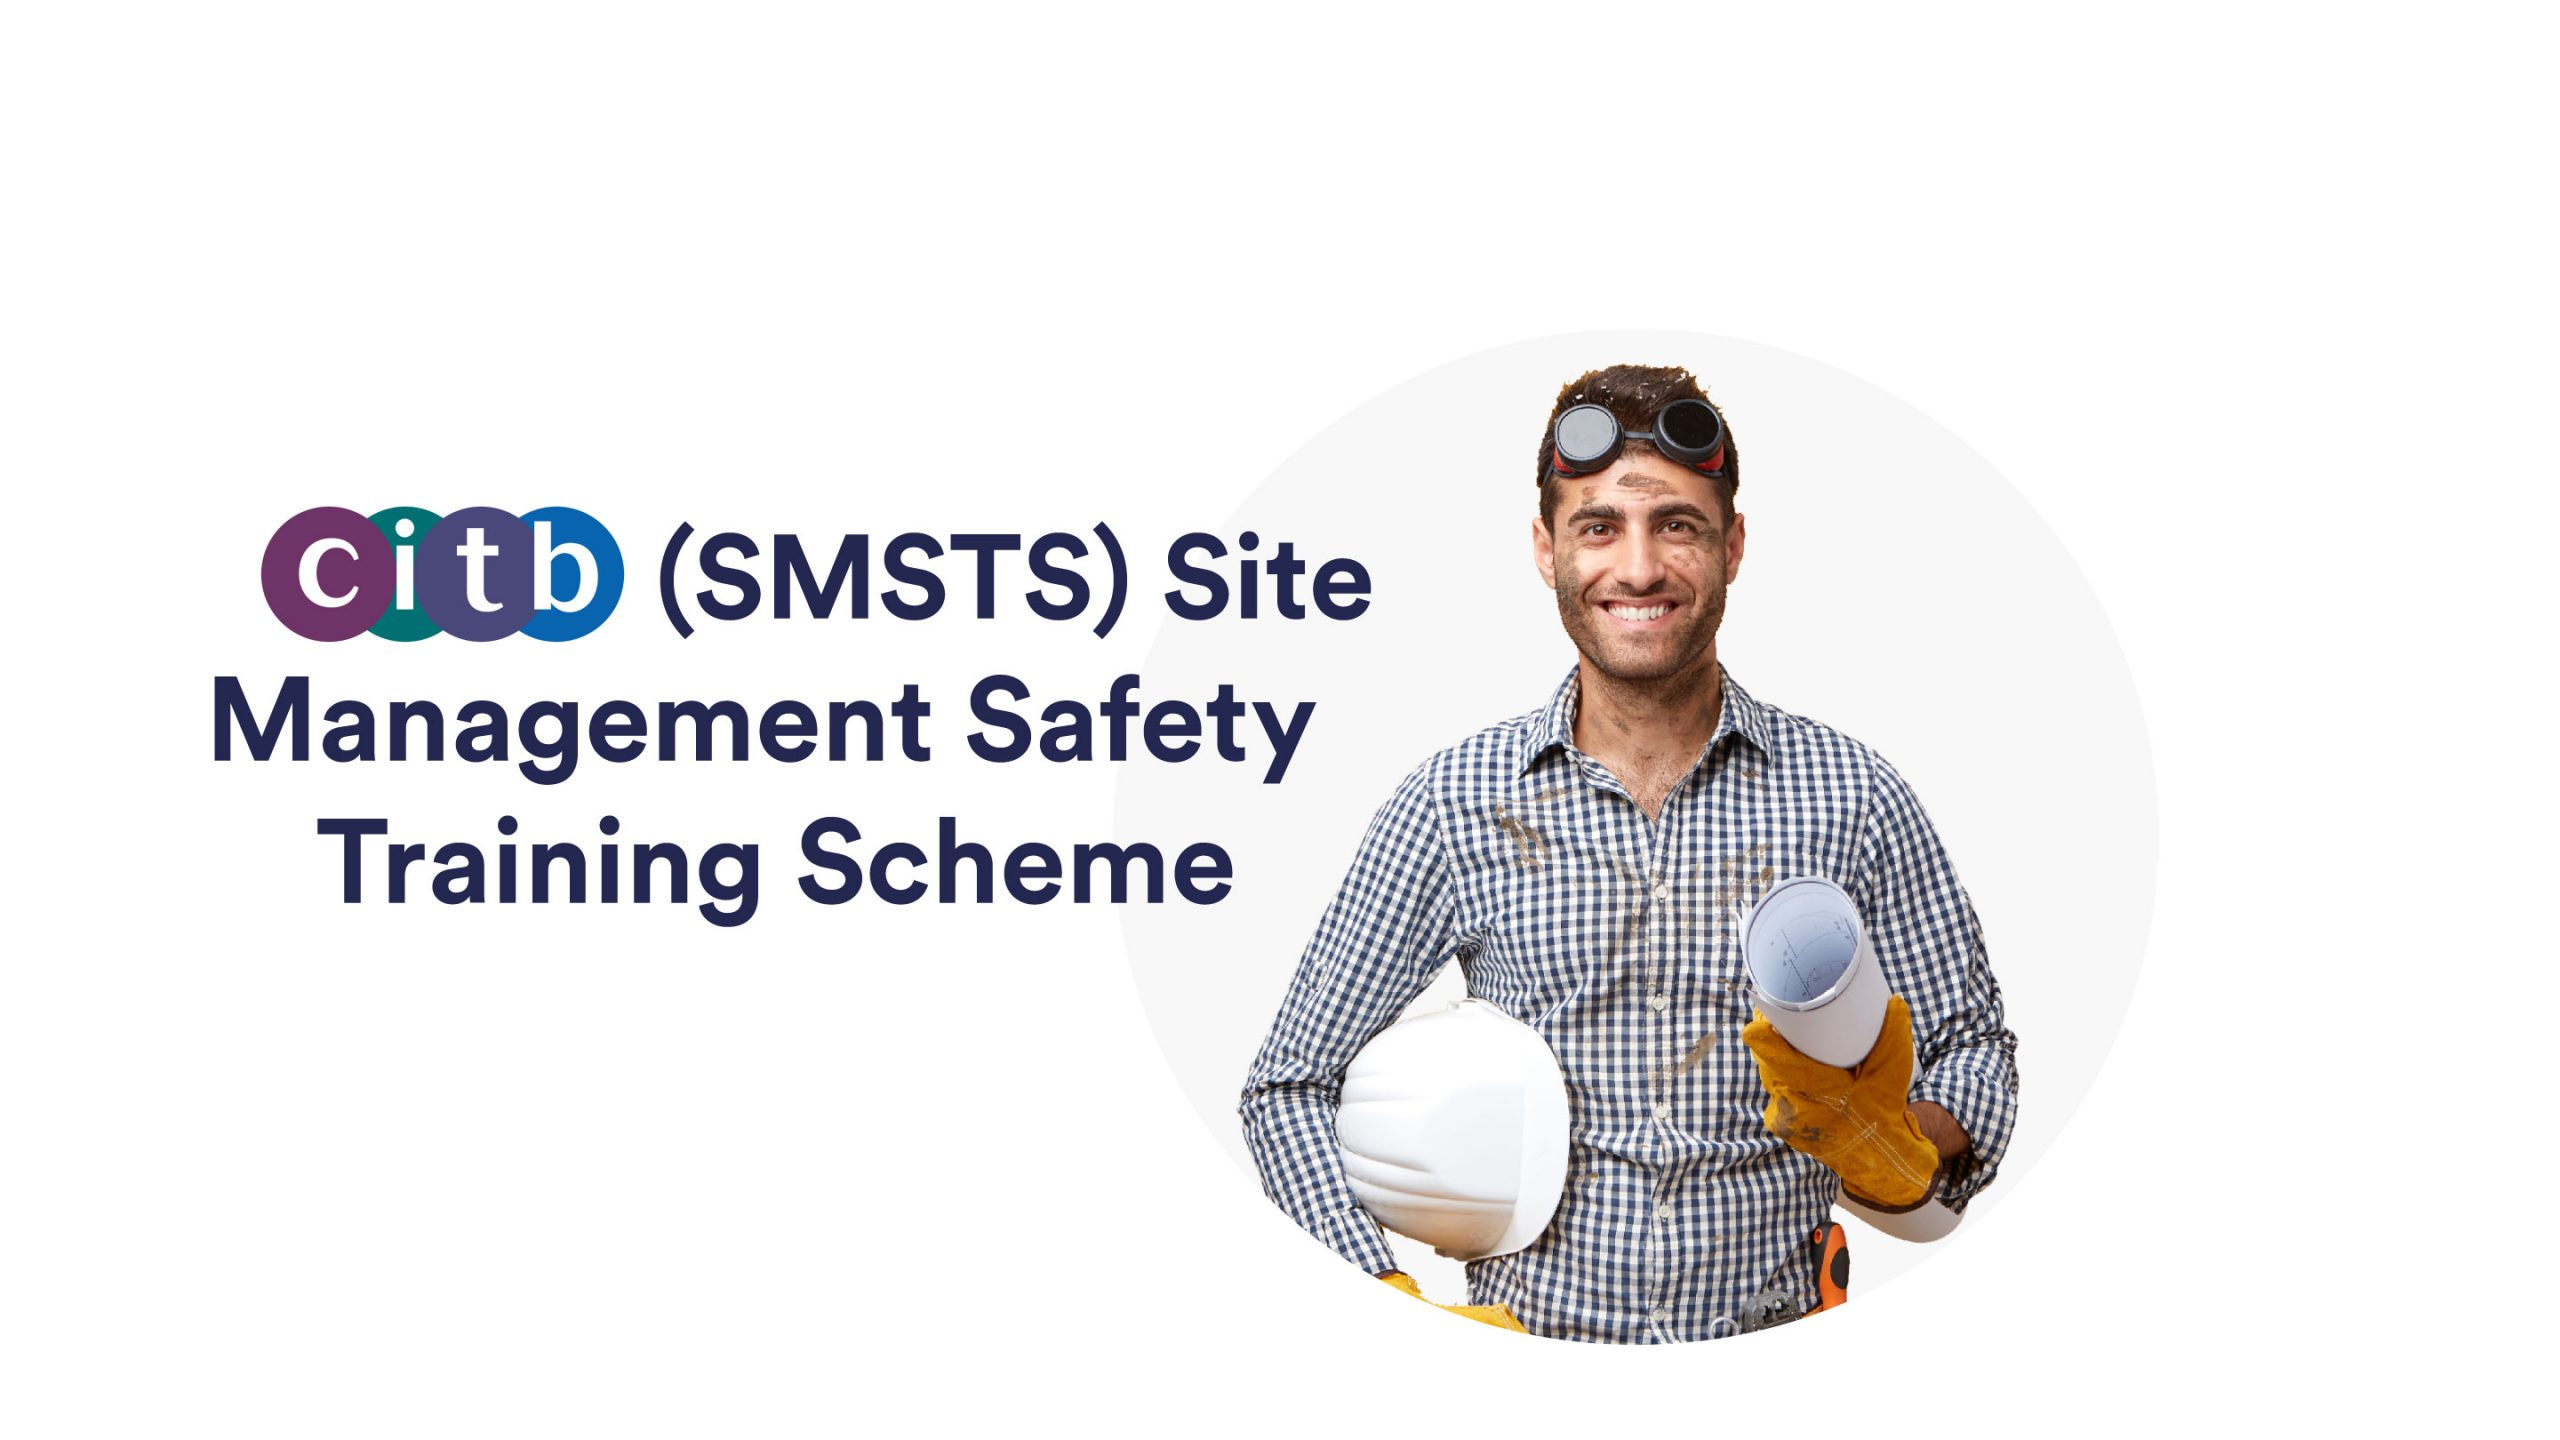 CITB_Site_Management_Safety_Training_Scheme_smsts_training_course_in_stoke_on_trent_white_background